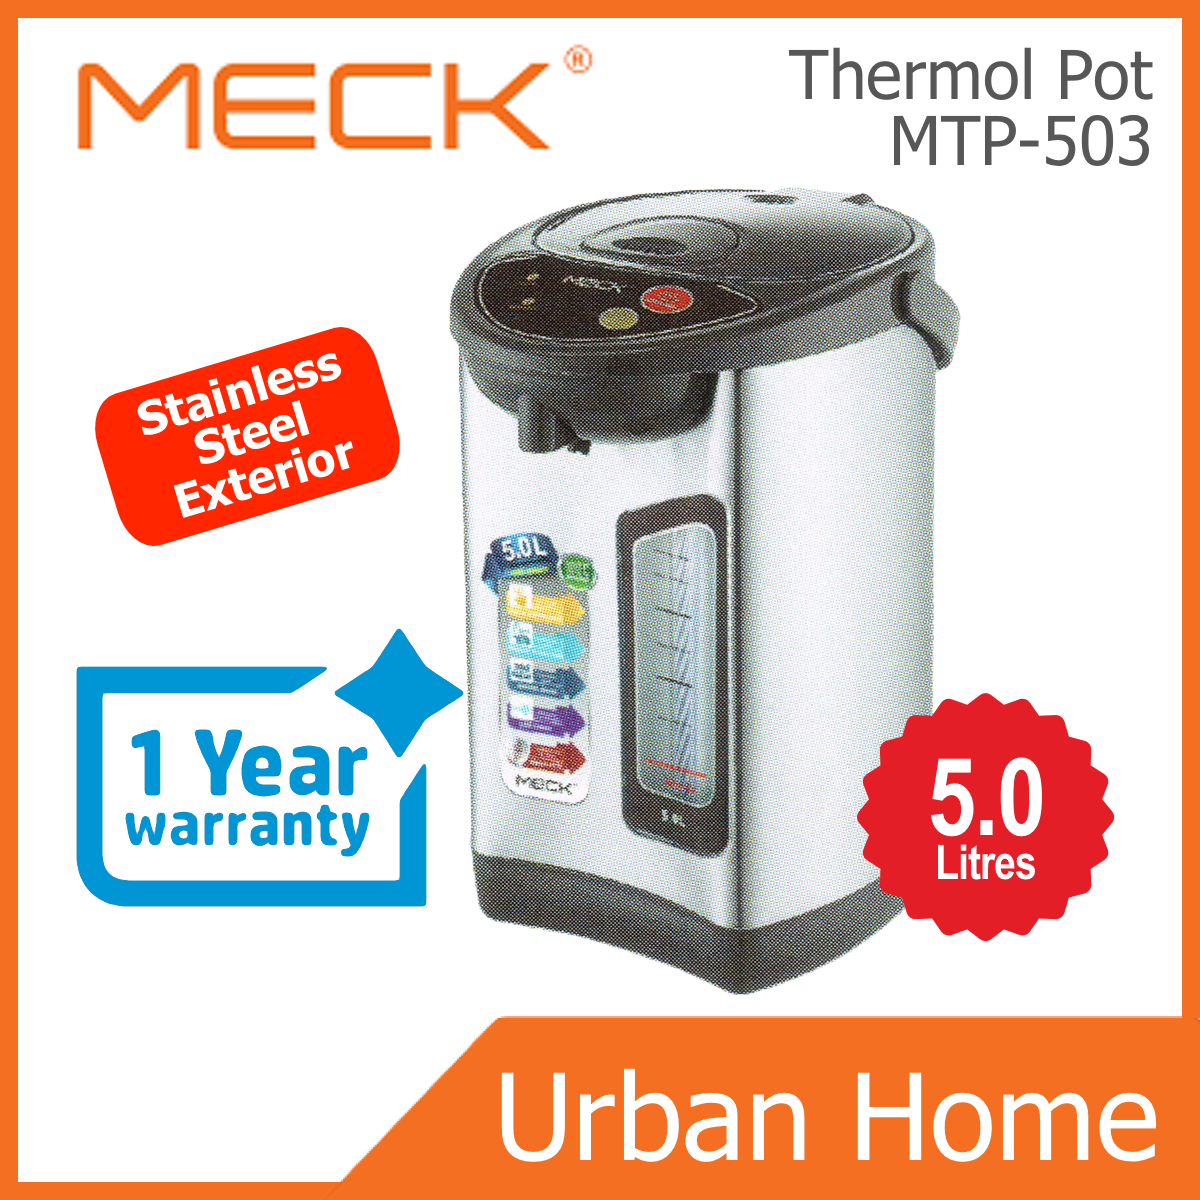 MECK 5.0L Thermo Pot (MTP-503/MTP503)